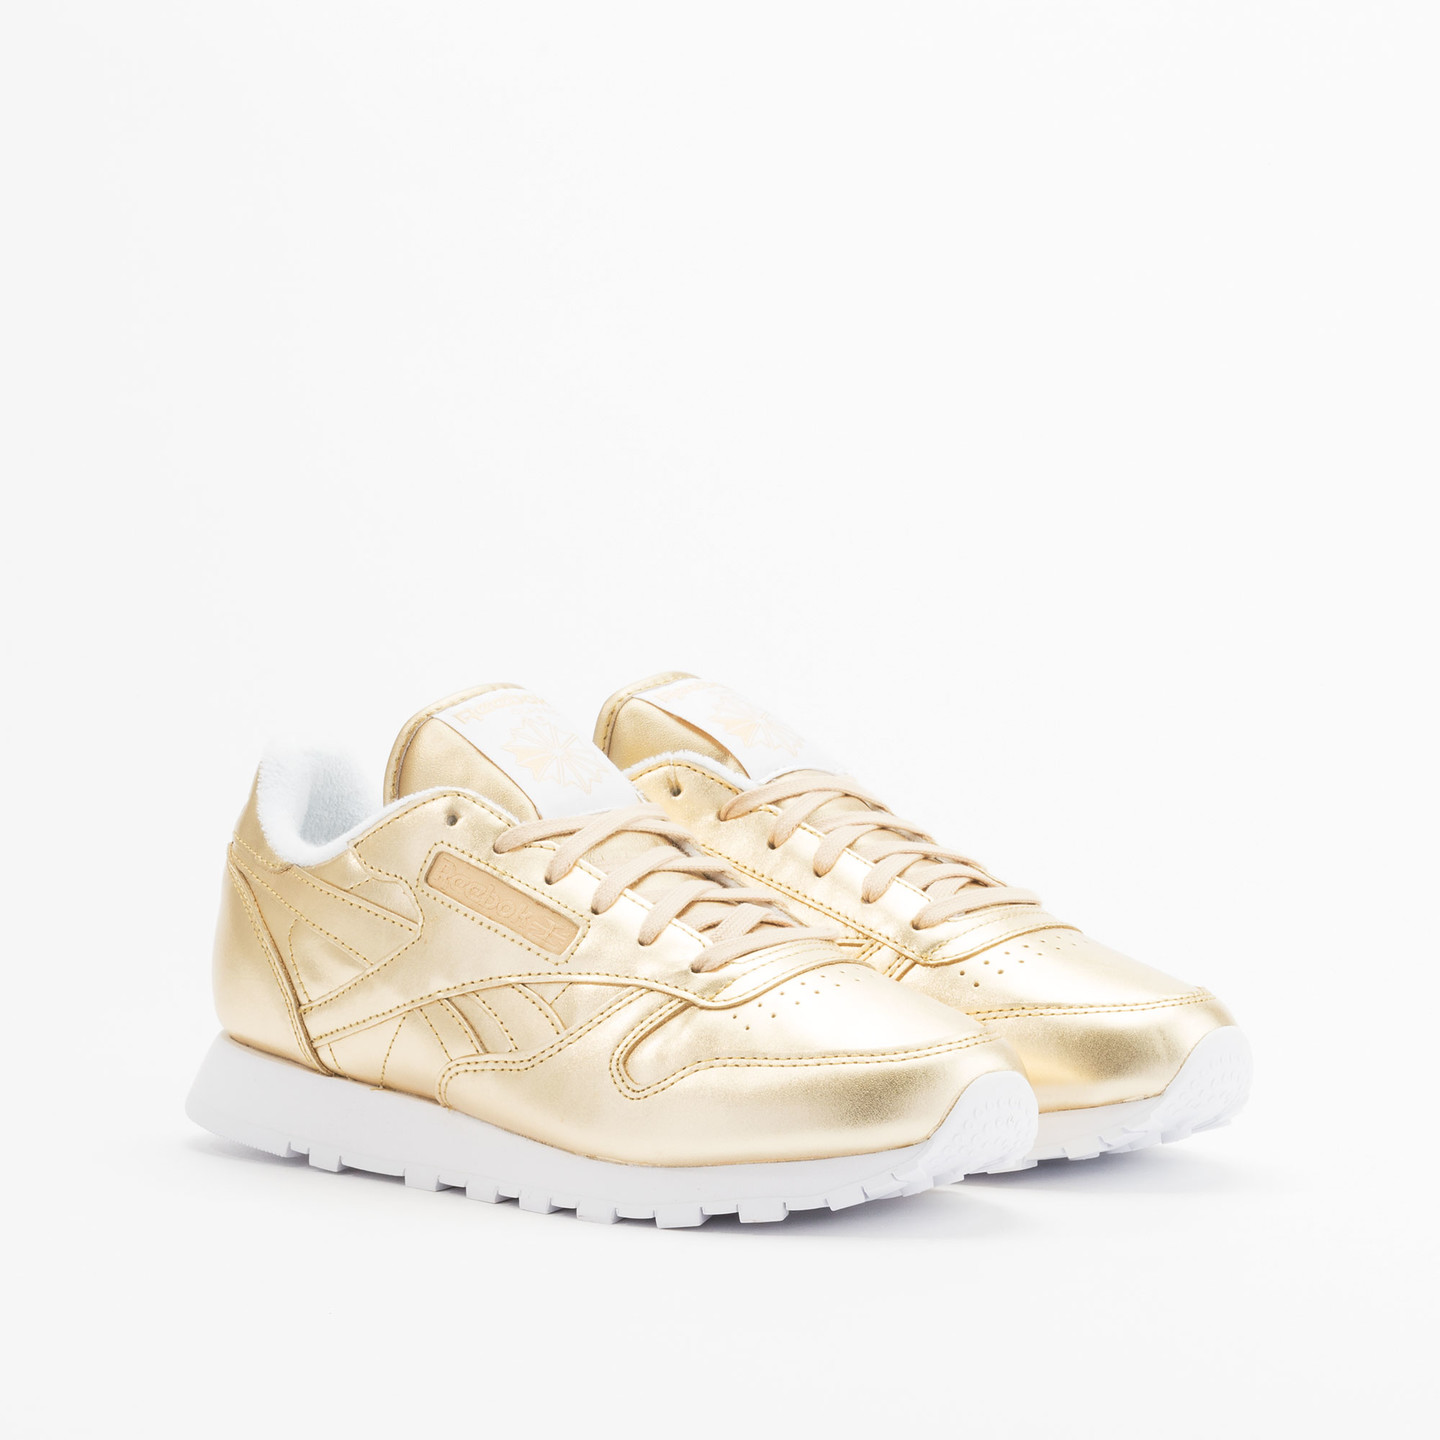 Reebok Classic Leather Spirit Sensation Gold / White V70668-42